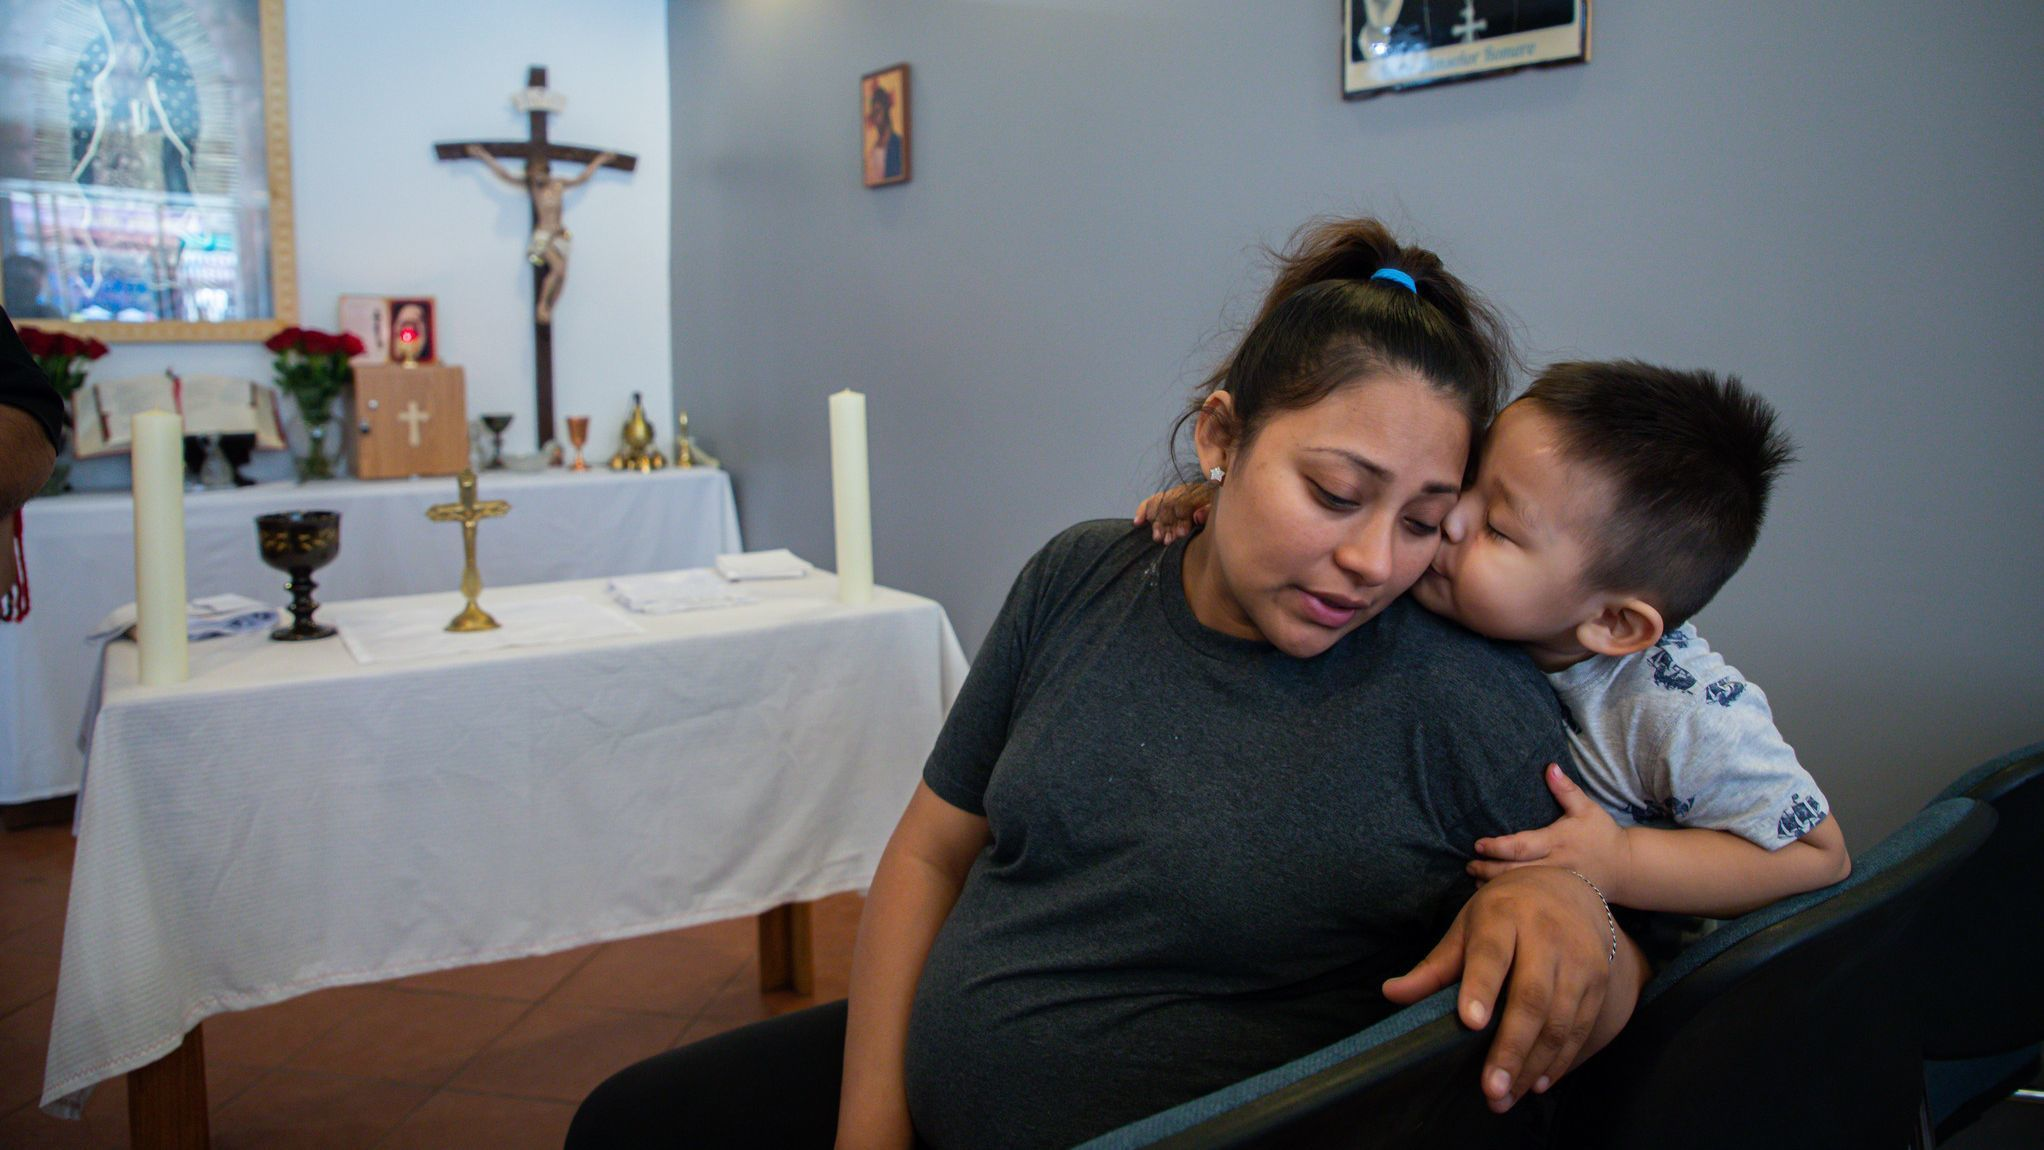 Pregnant mother of 3 given sanctuary inside Chicago church as deportation looms